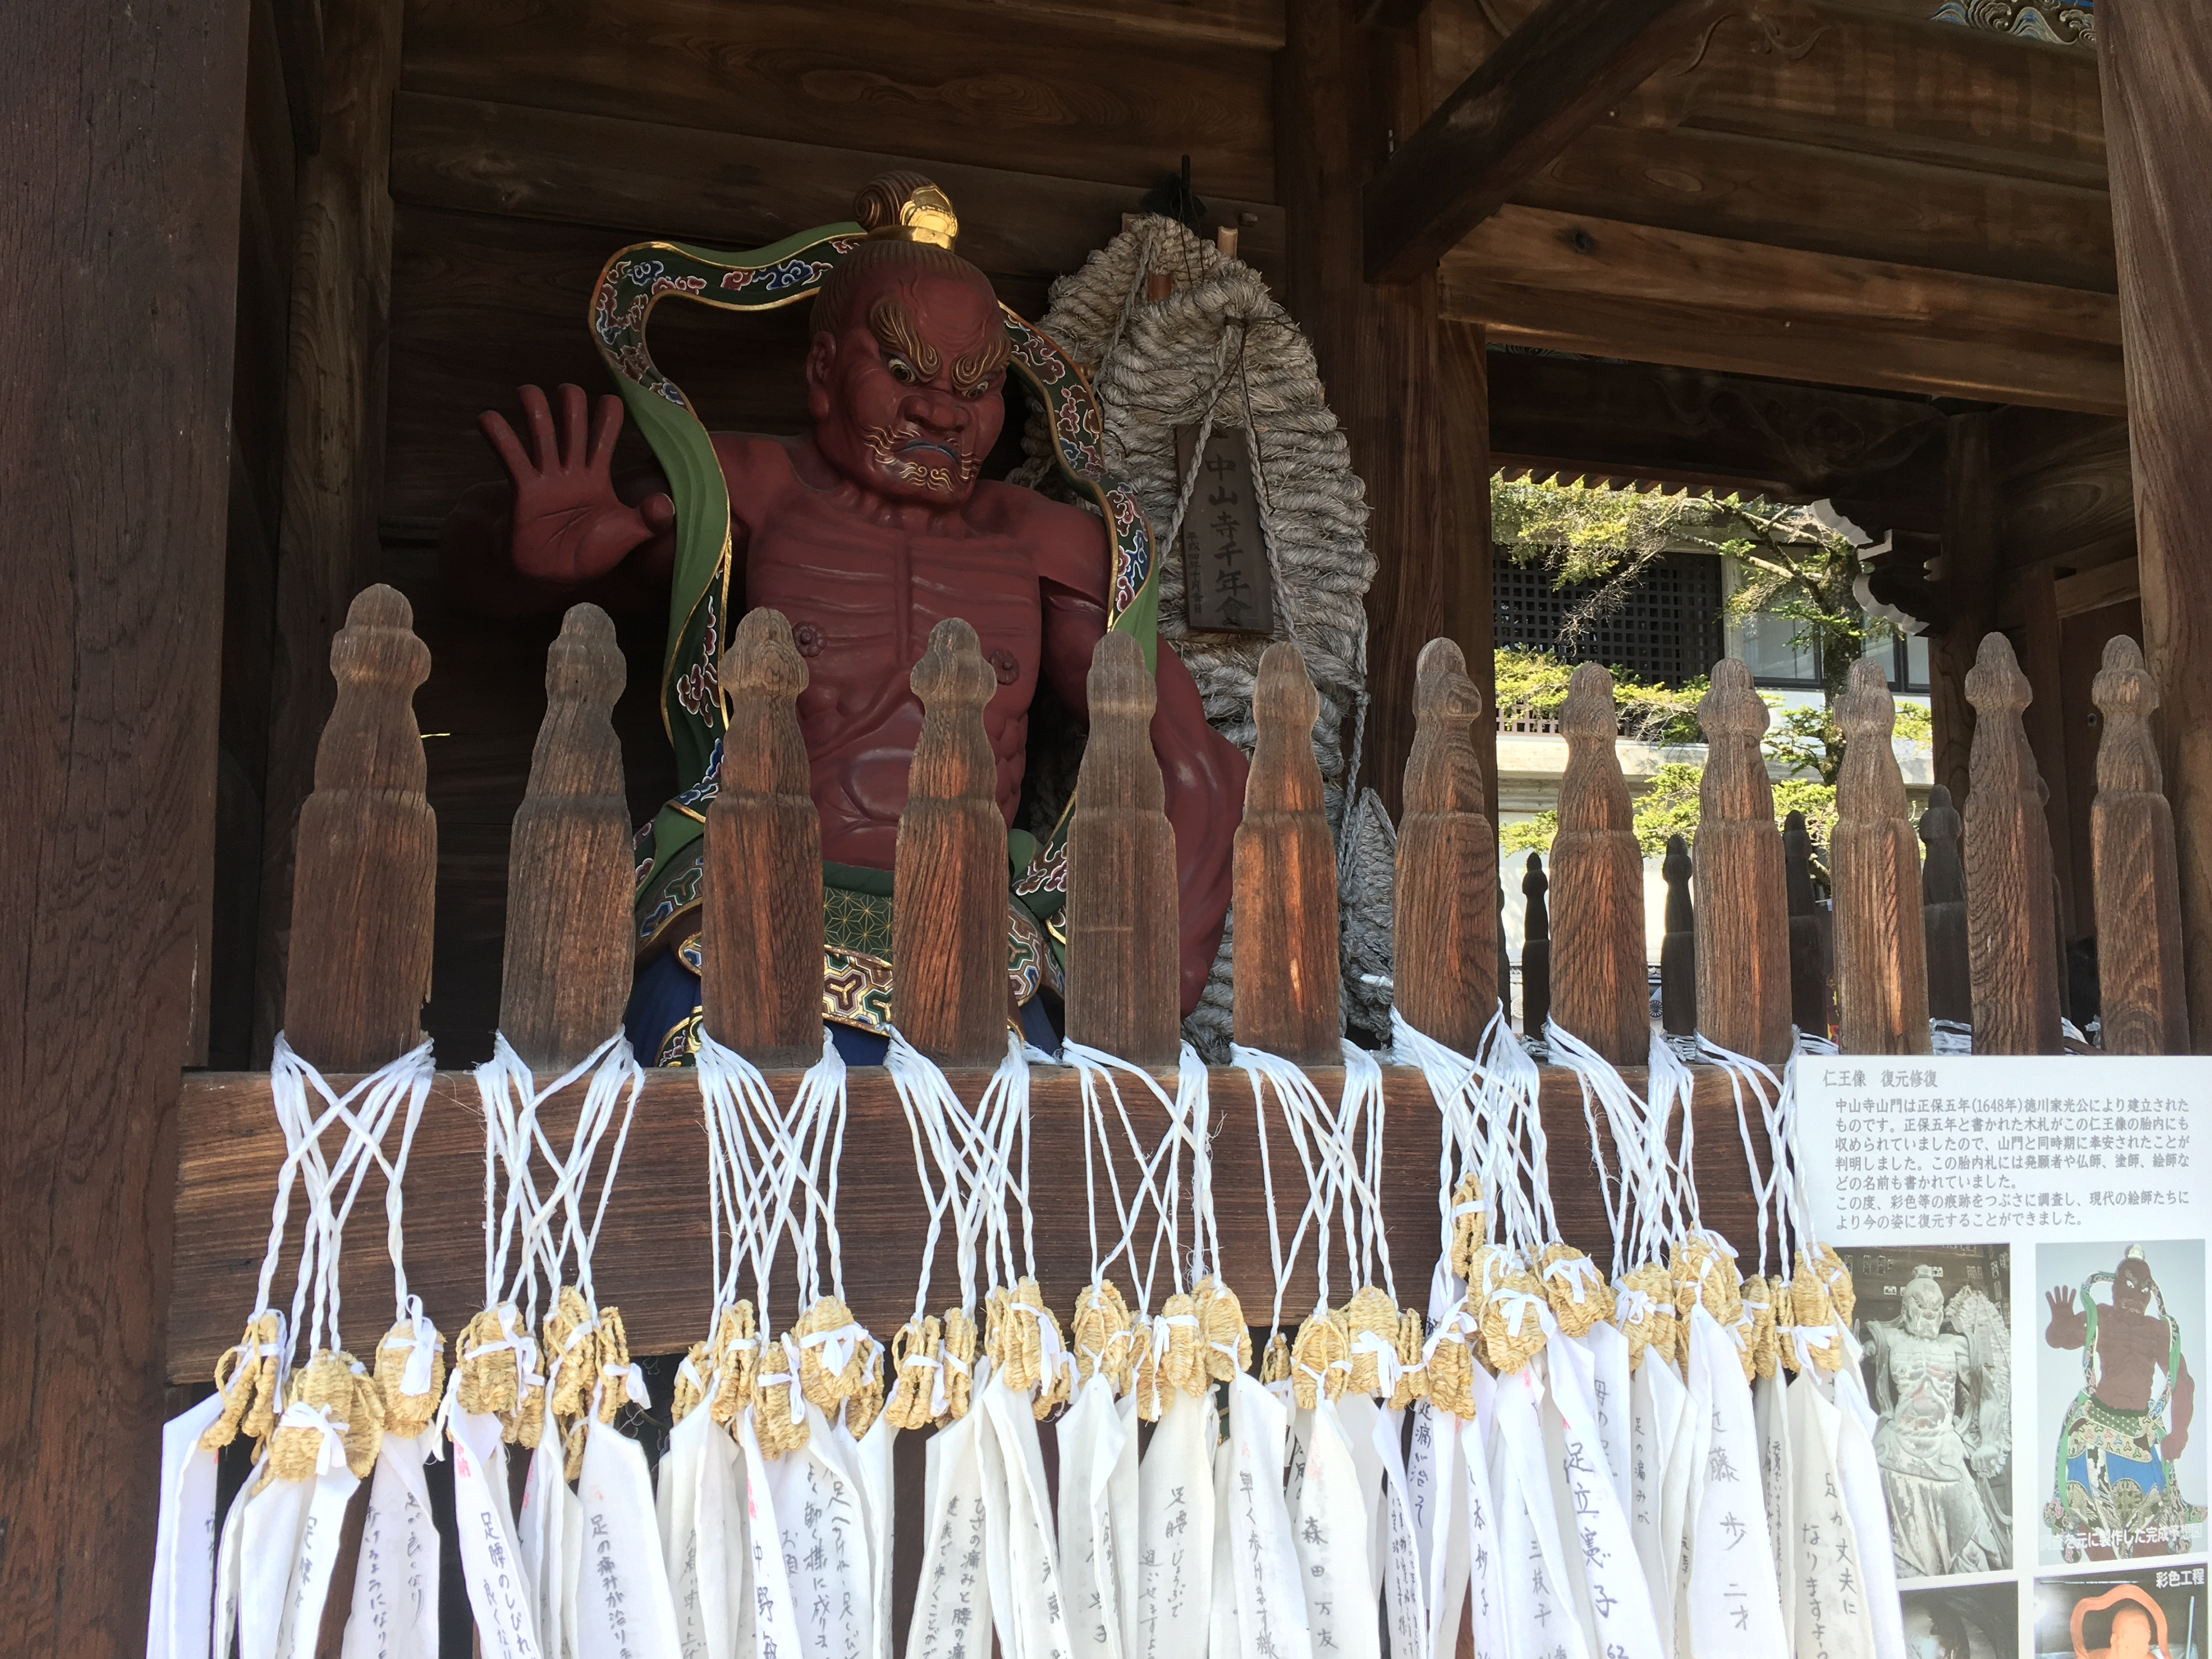 fearsome red statue guards Nakayama-dera entrance covered in small straw sandals